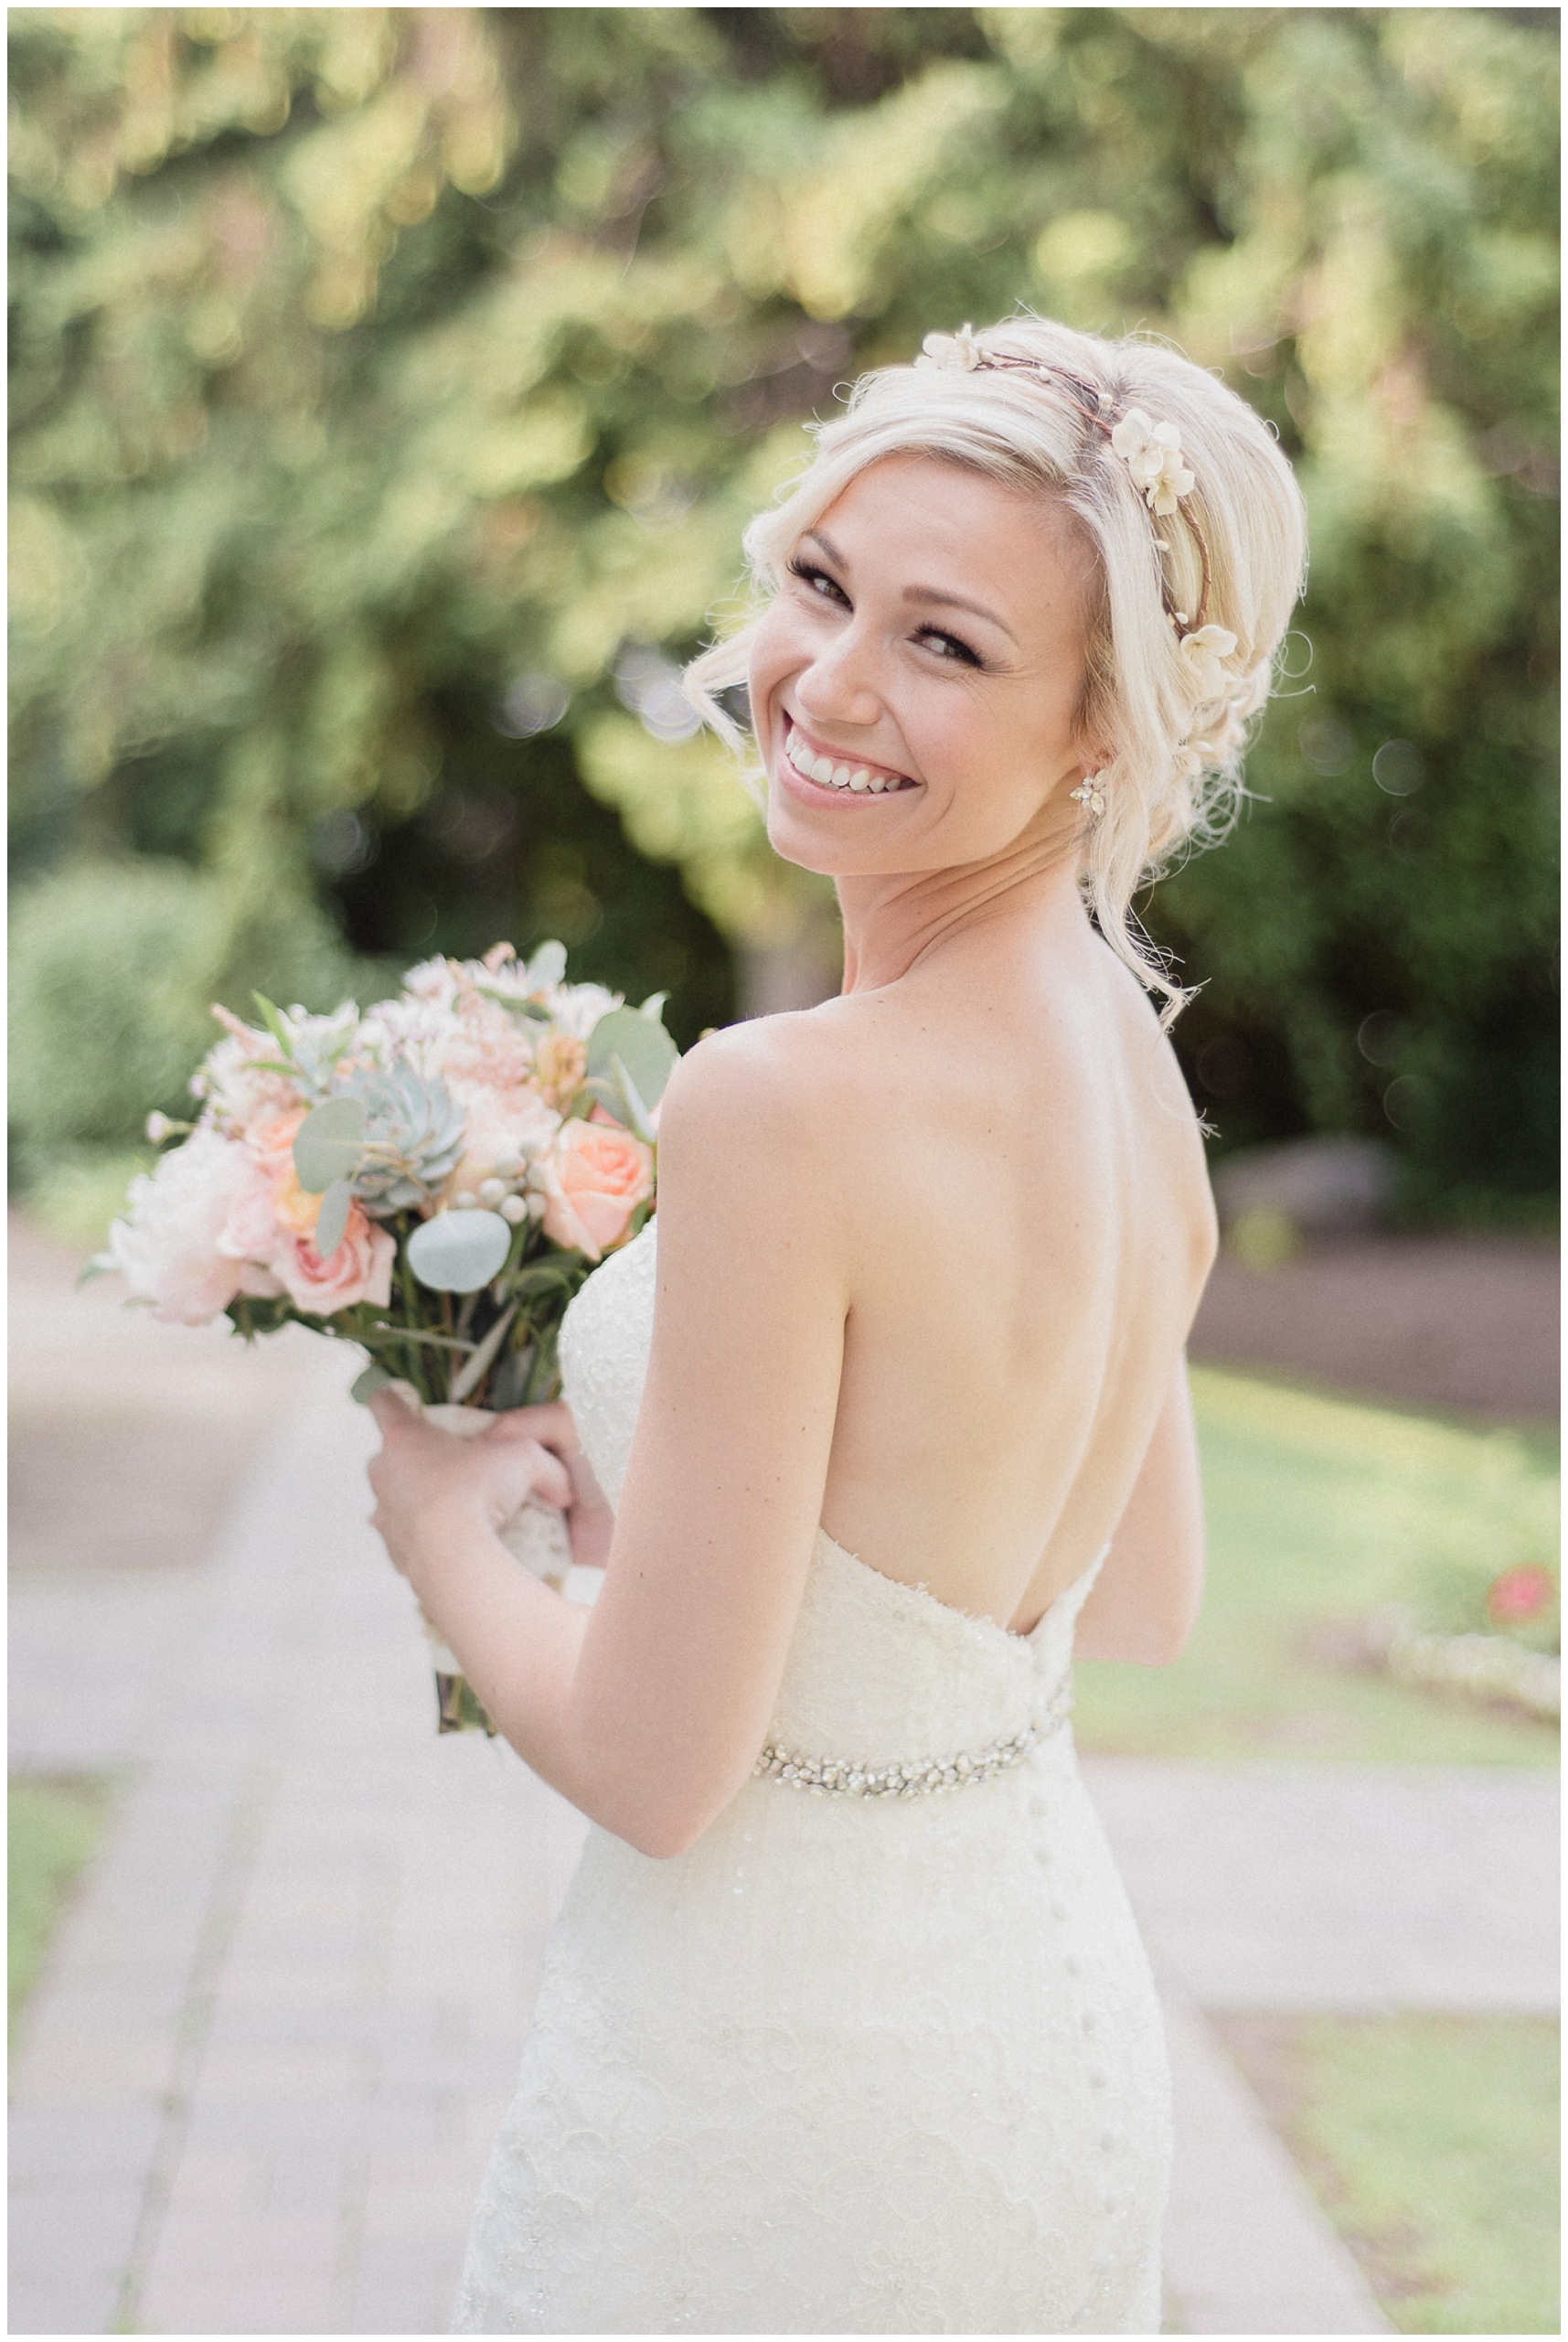 Stunning bride at her Bear Estate Wedding, photographed by Jenn Kavanagh Photography